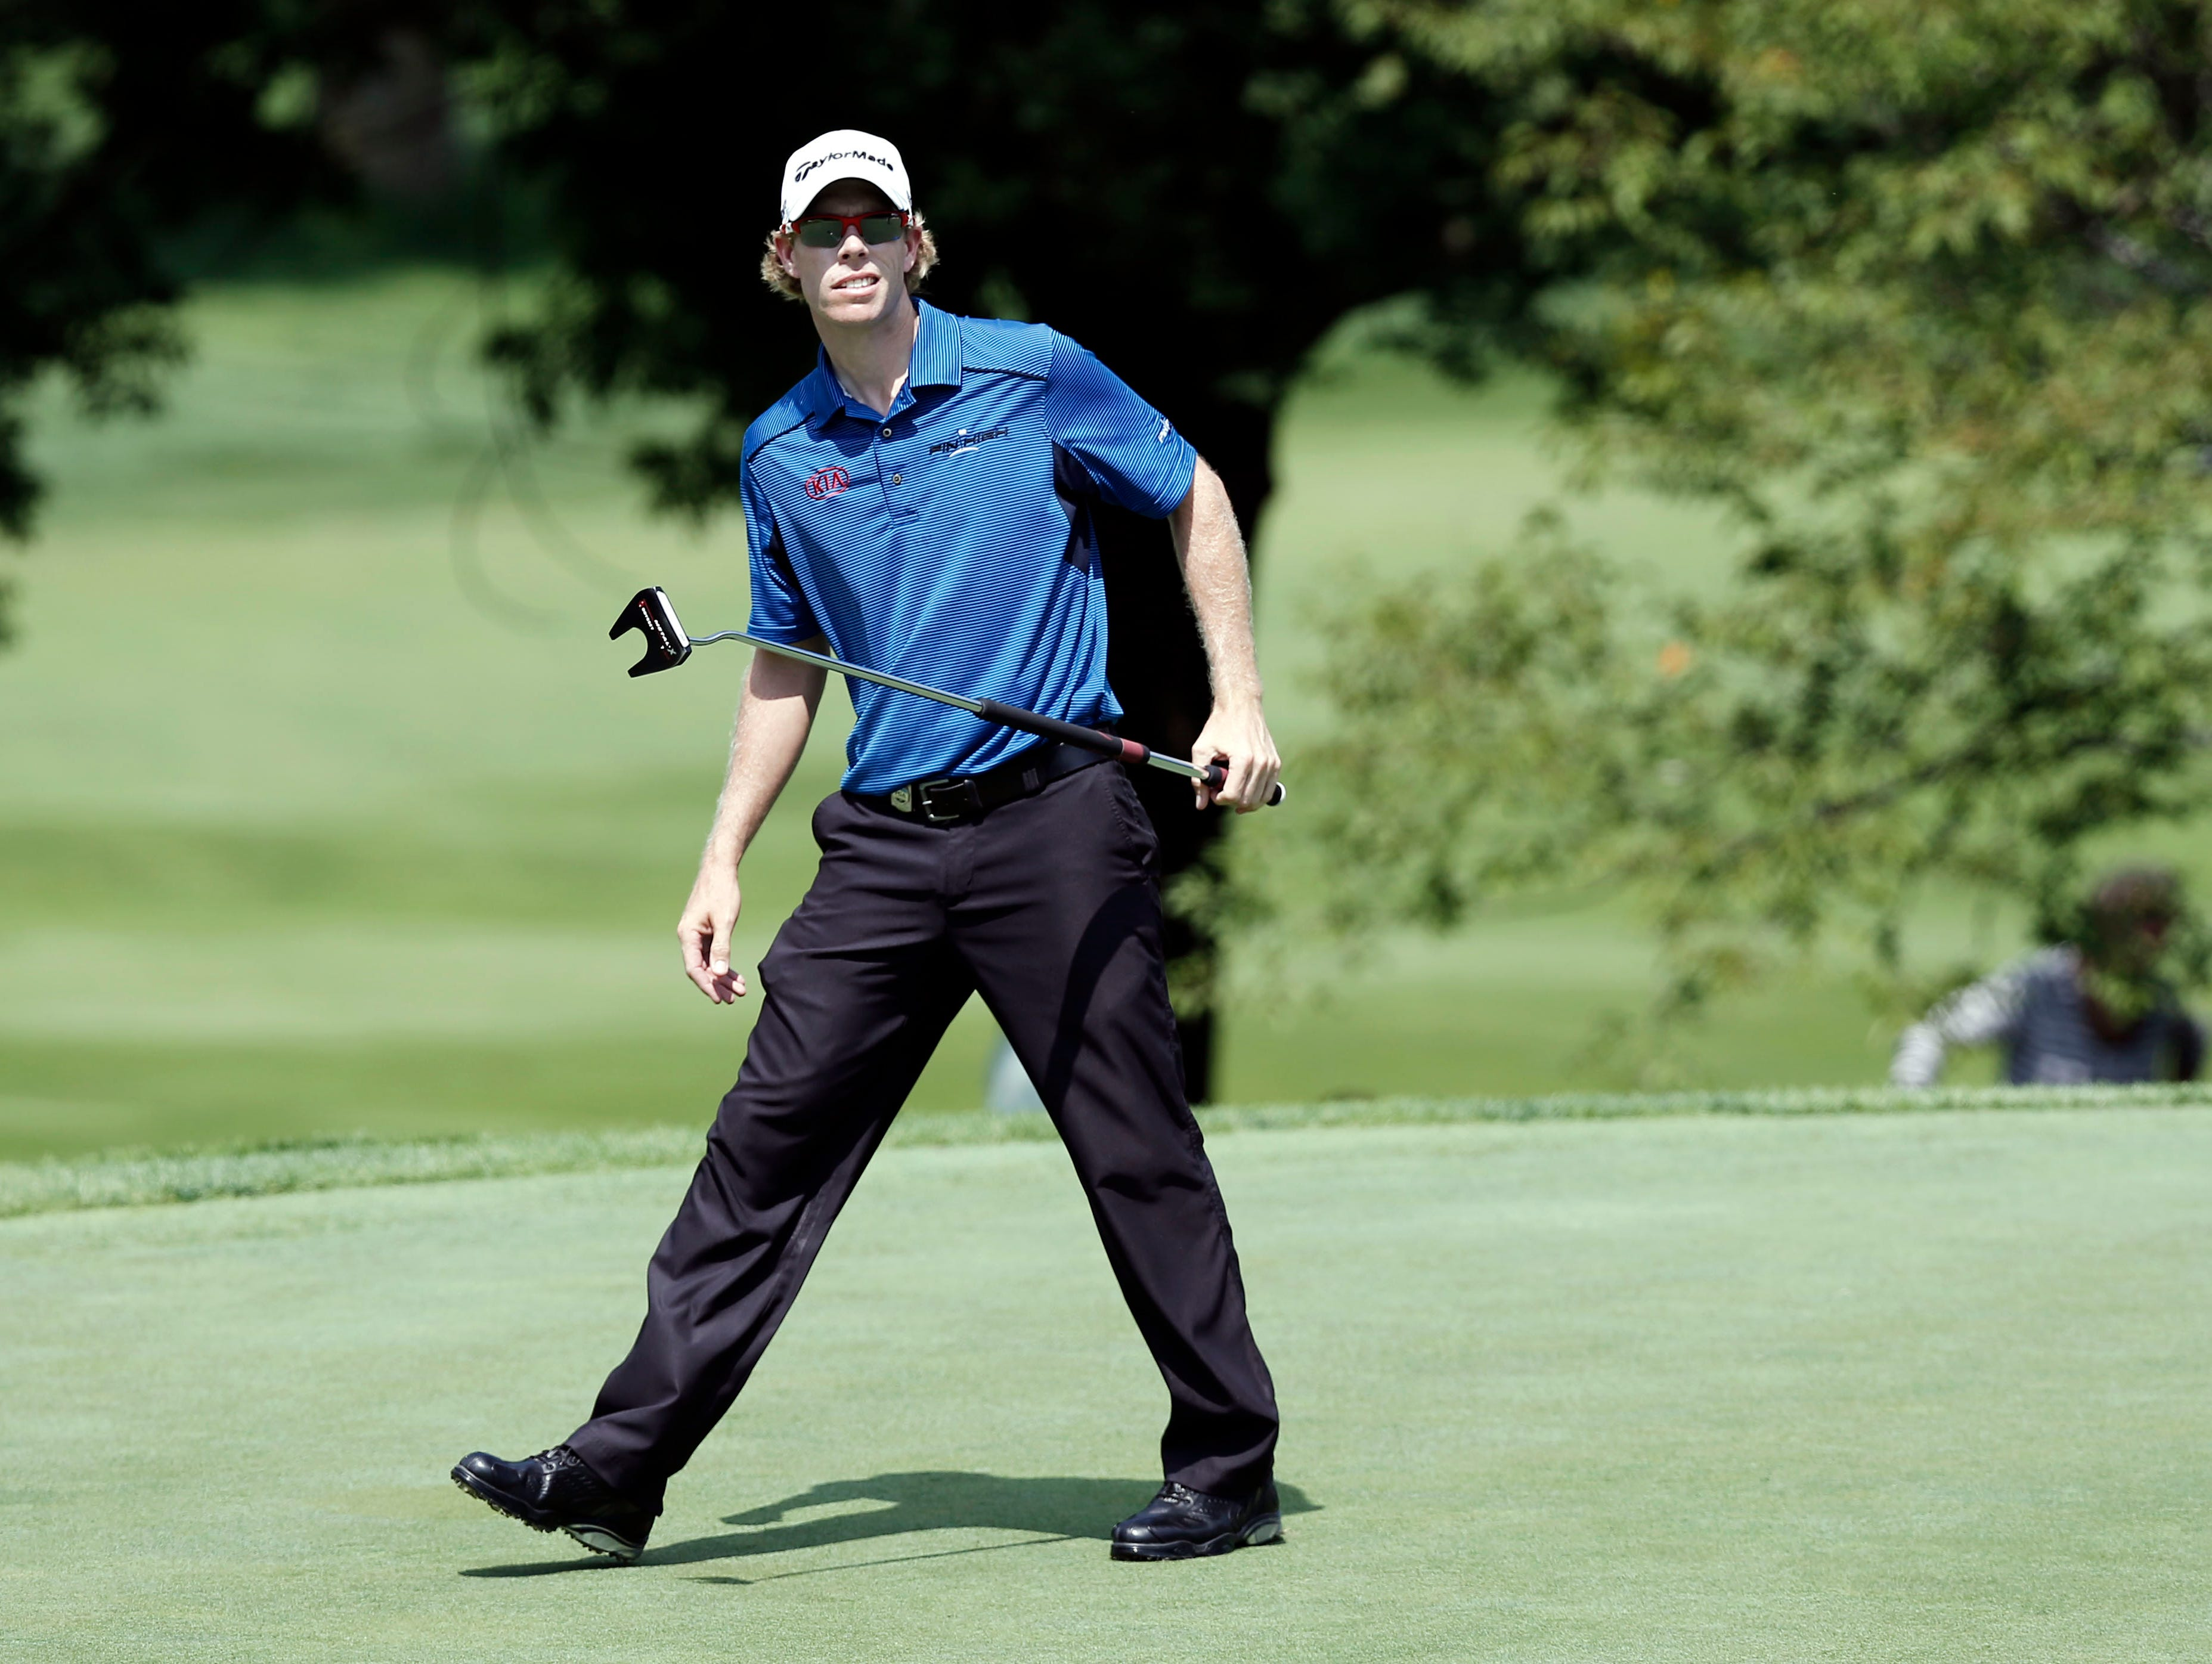 David Hearn reacts to his putt on the 17th green during the first round of the 95th PGA Championship at Oak Hill Country Club.